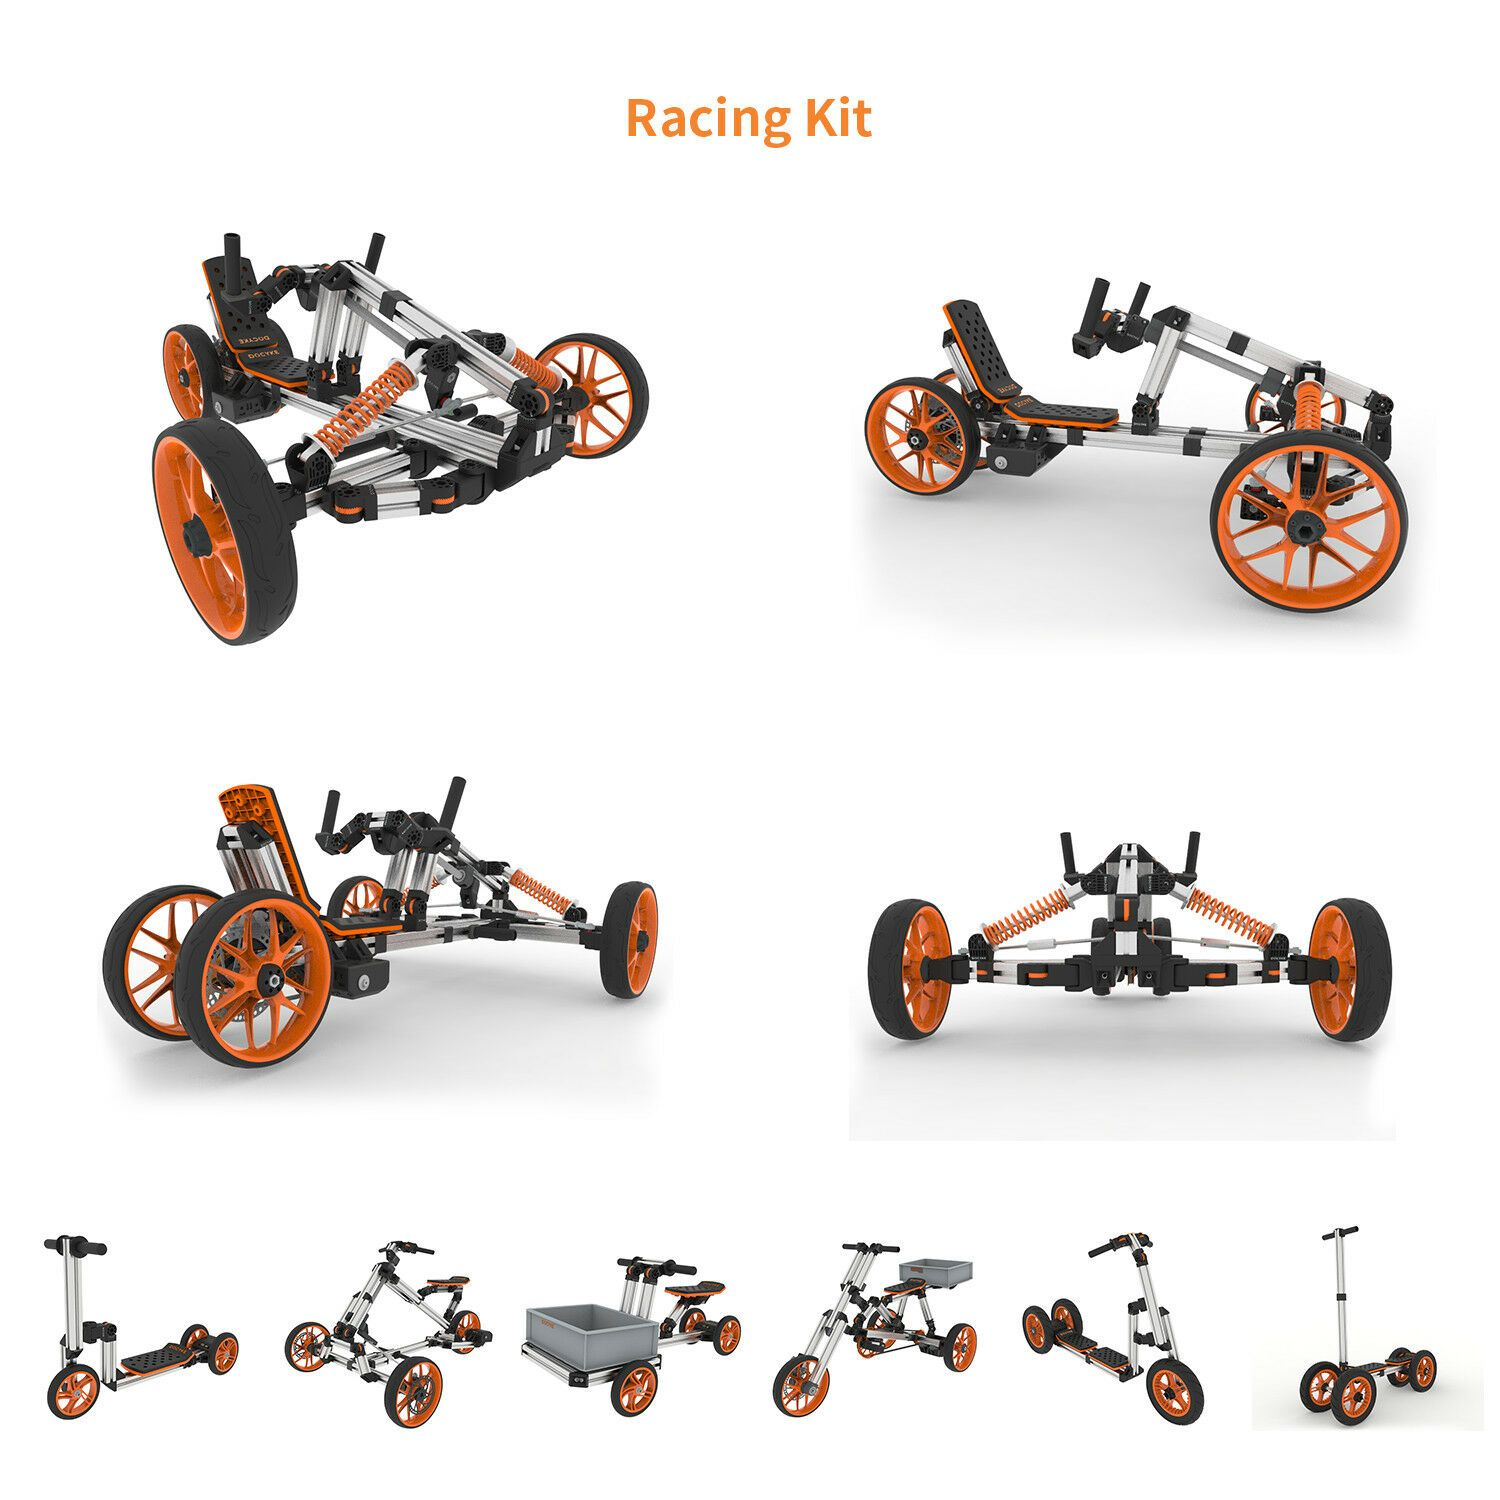 Details About Docyke Creative Rides For Kids 10in1 Racing Kit